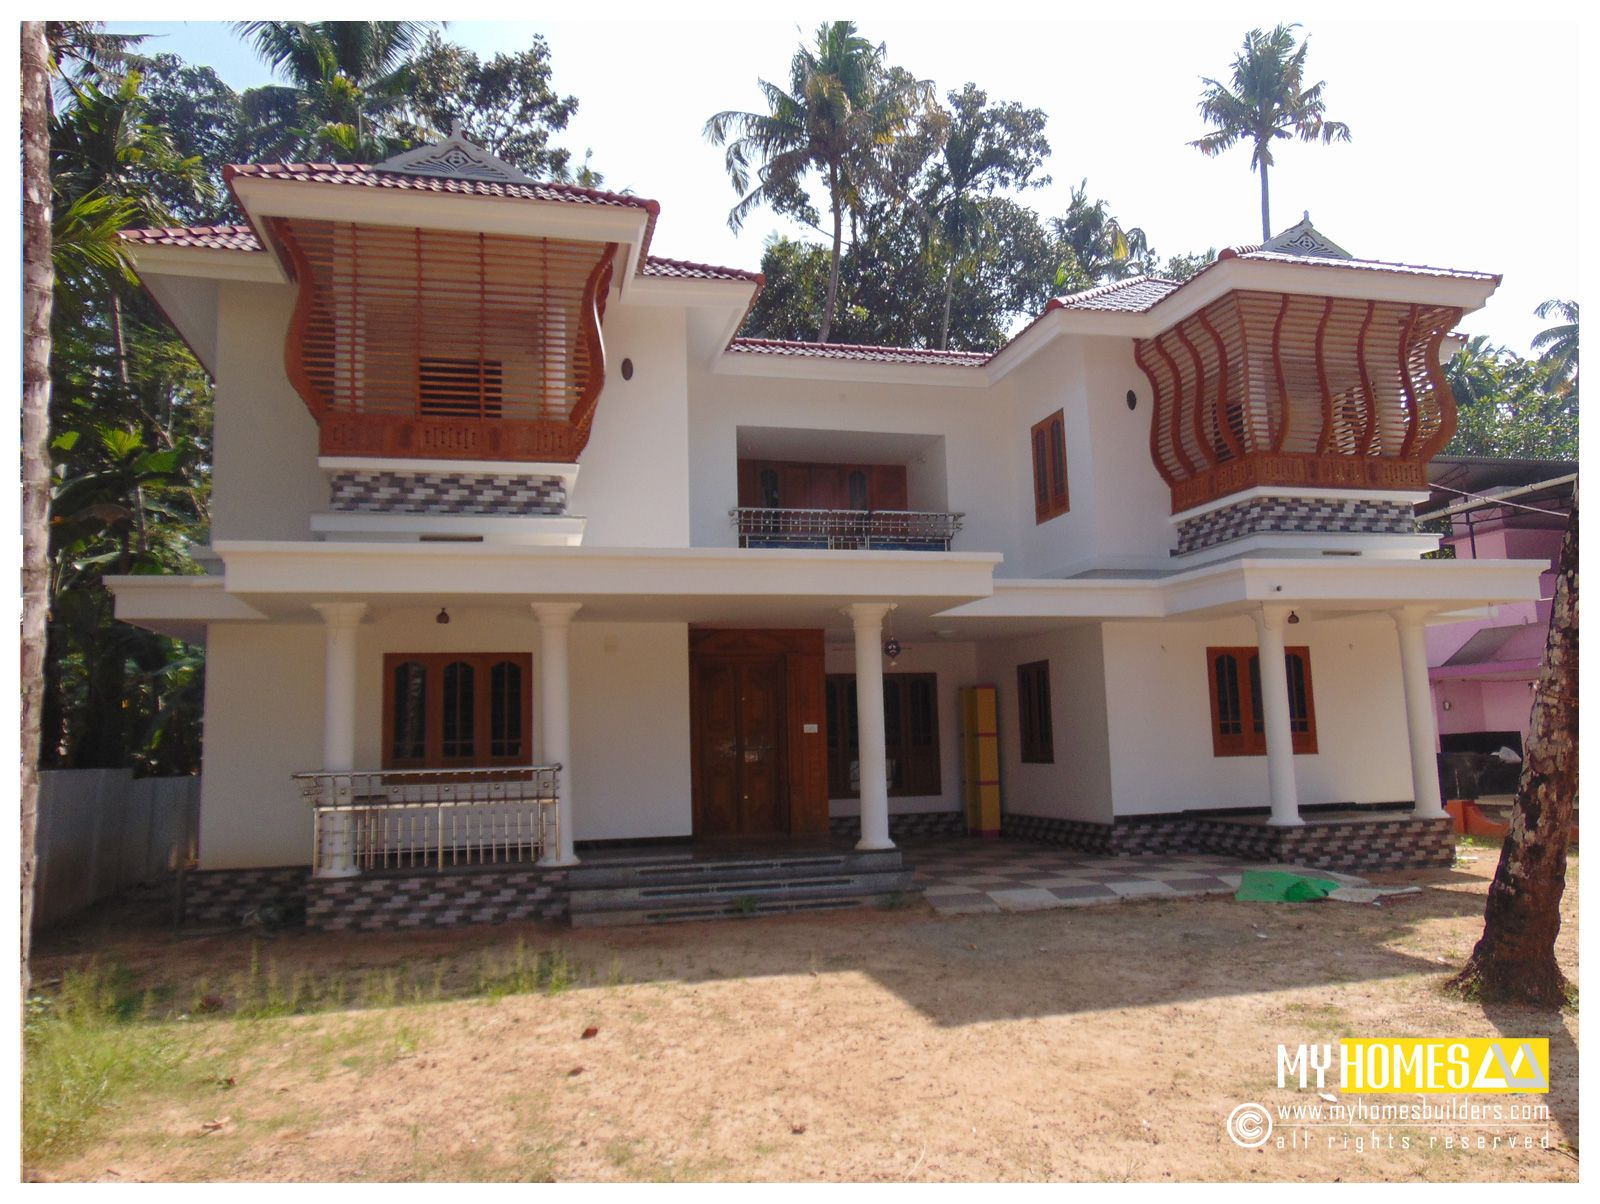 1150 Sq Ft House Design In Kerala Traditional Style Kerala Traditional House  Plans Open A New Gateway To Promote The Designing And Construction Ofu2026